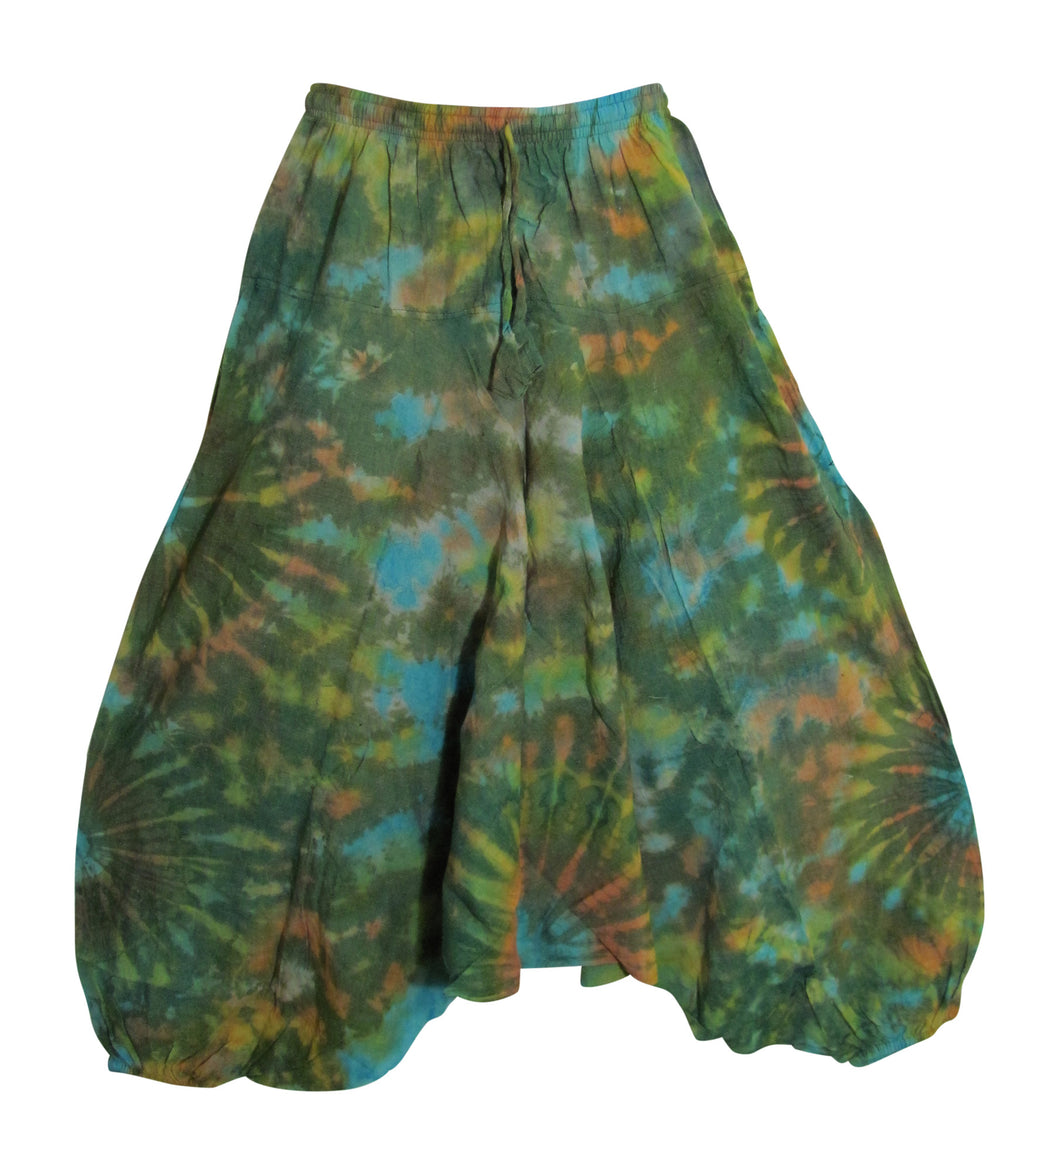 Men's Vintage Hippie Aladdin Tie-Dye Stonewashed Cotton Yoga Baggy Harem Pants Green - Ambali Fashion